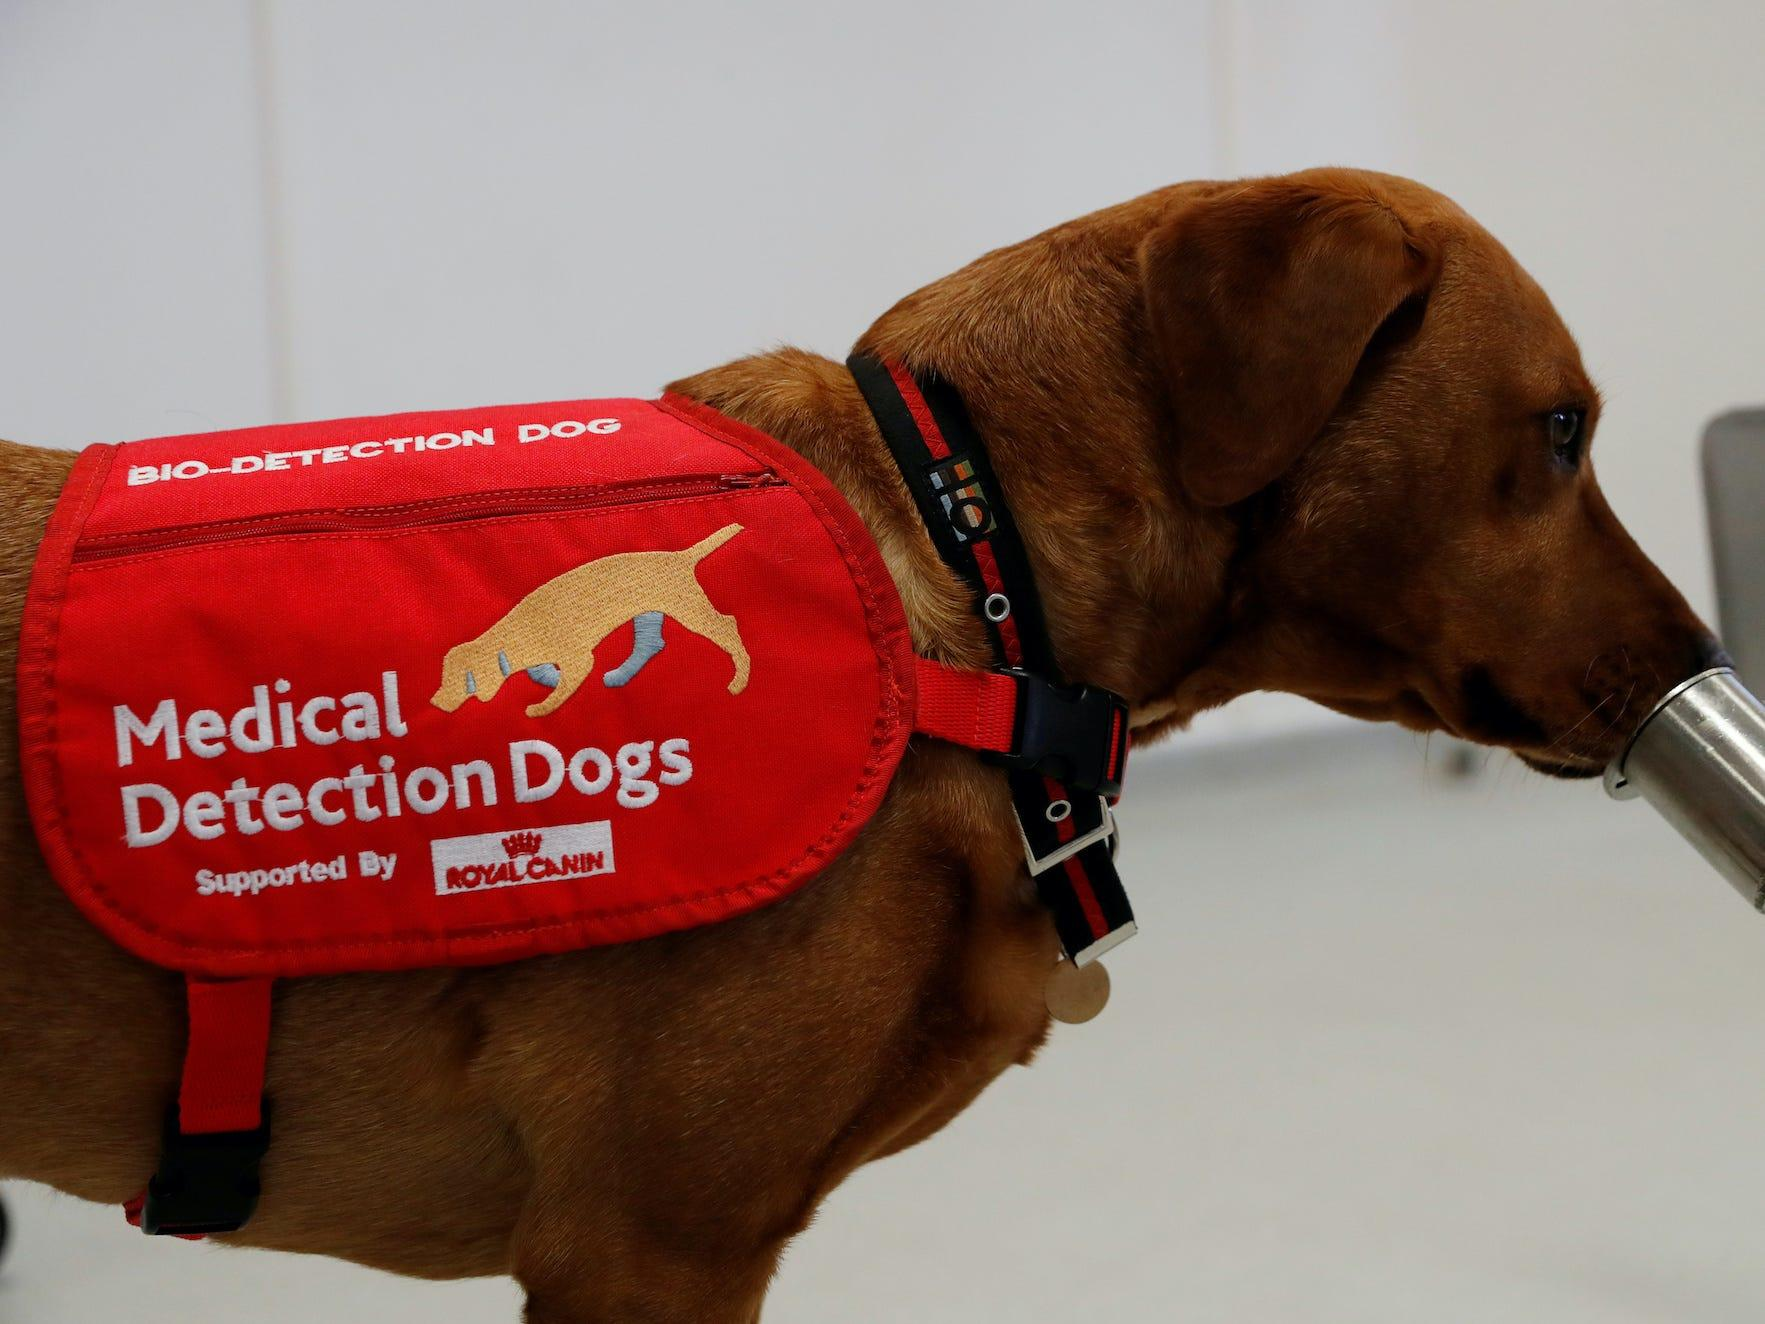 Dogs are capable of detecting cancer